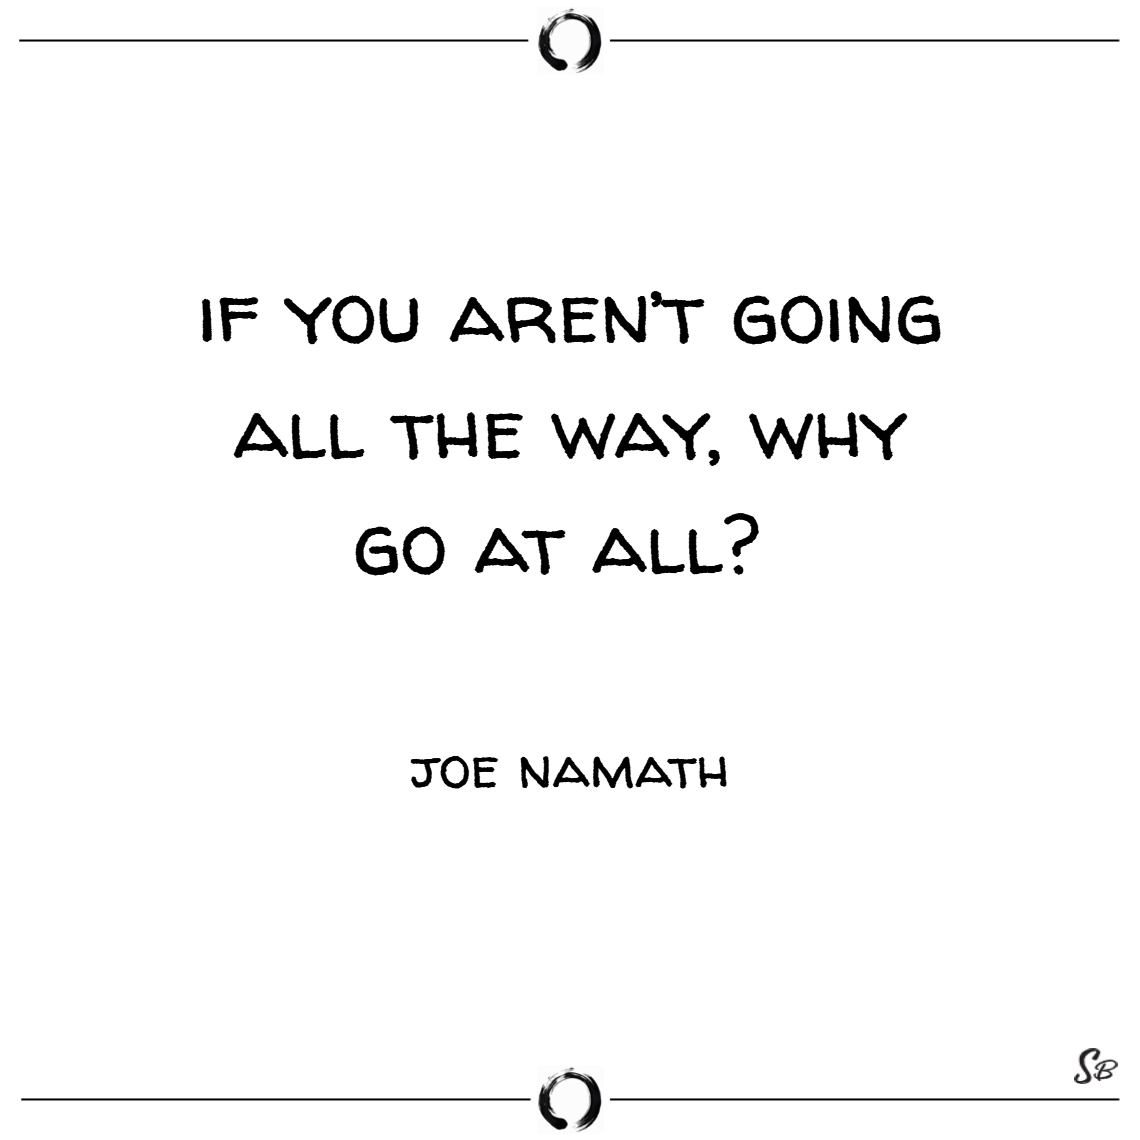 If you aren't going all the way, why go at all –